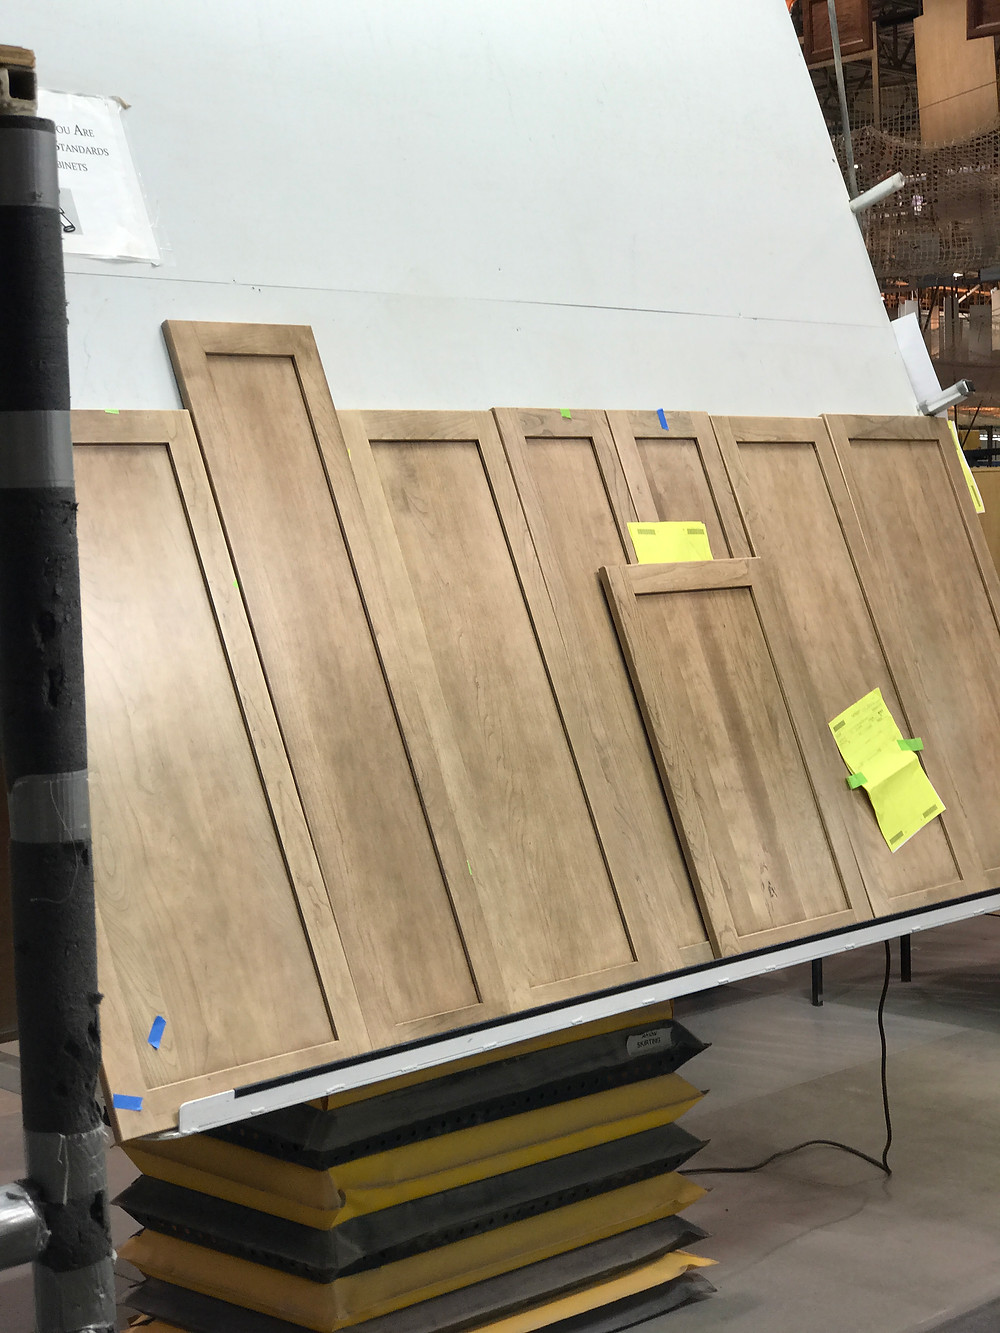 Comparing the finished doors in one place